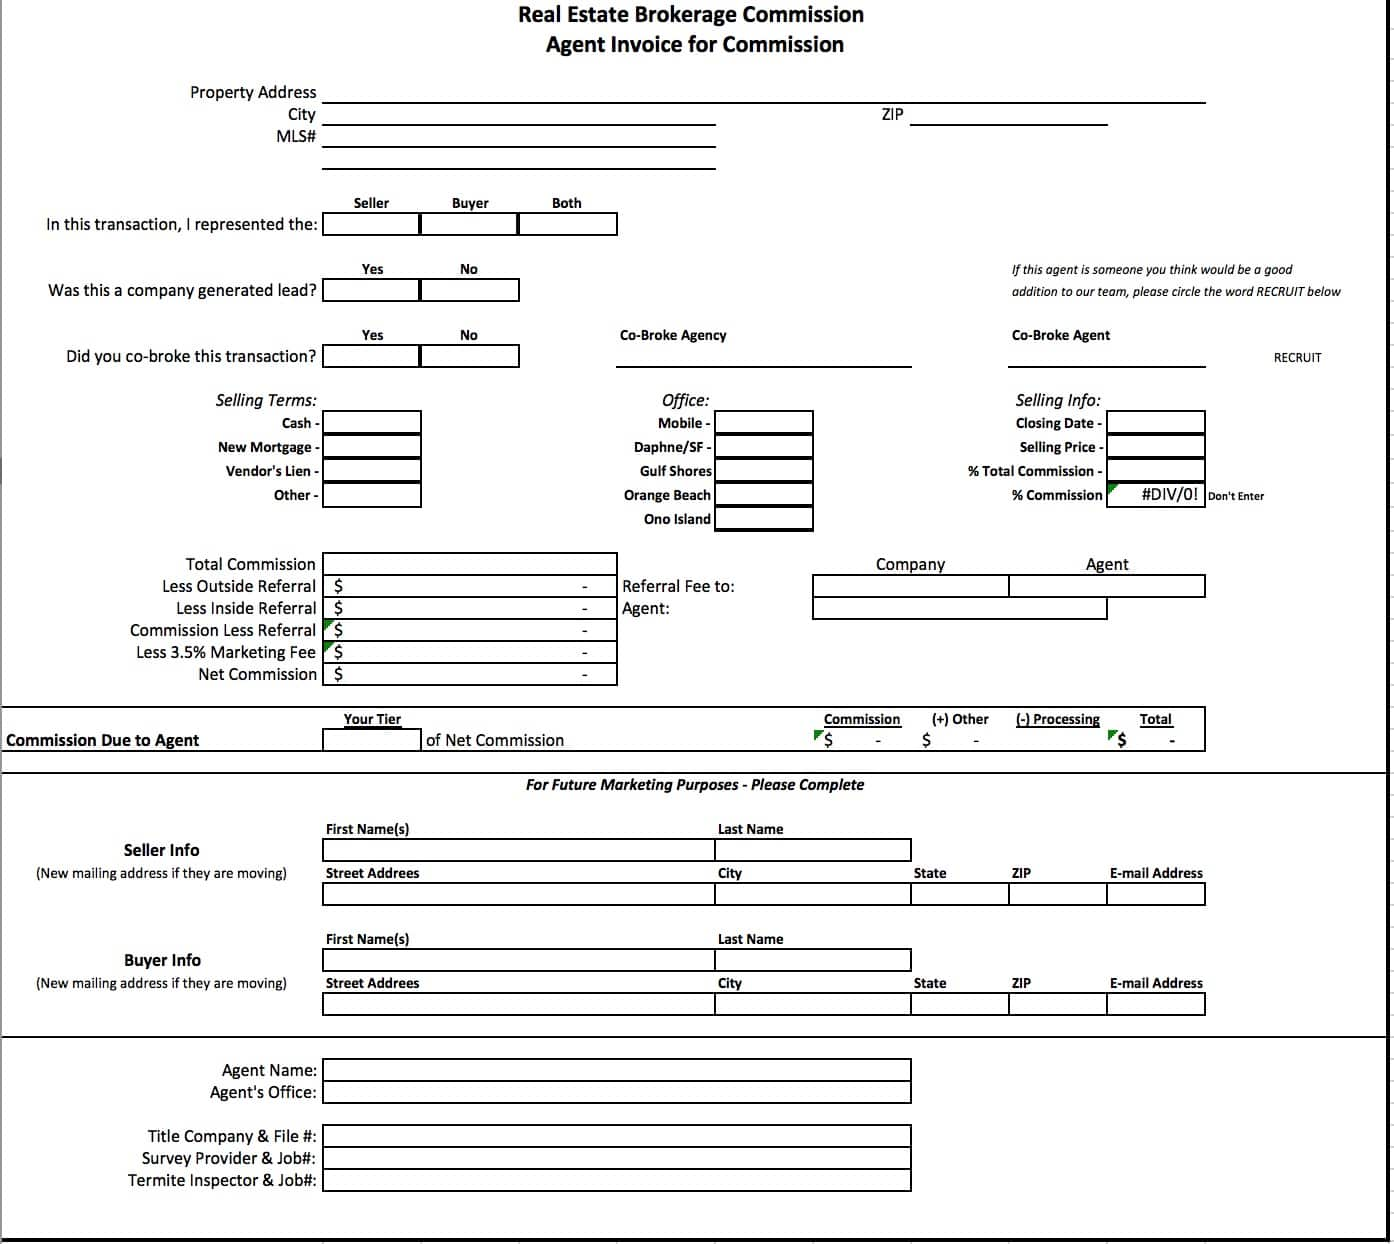 Free Real Estate Brokerage Commission Invoice Template | Excel